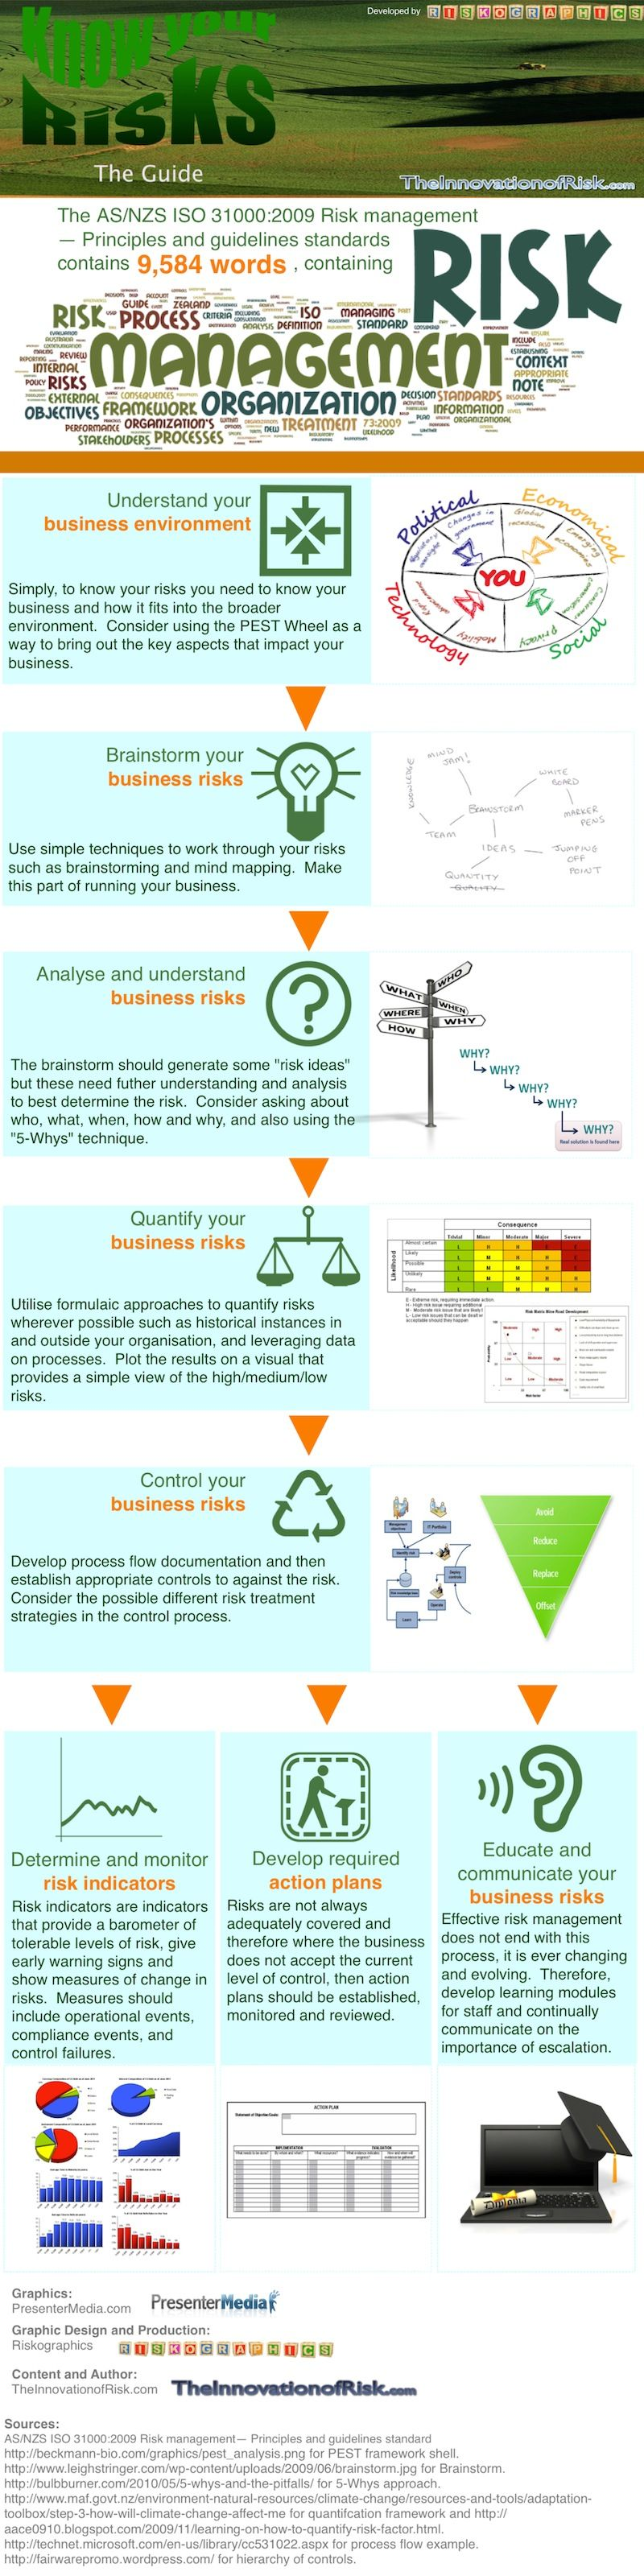 Know Your Risks An Infographic Guide Innovation of